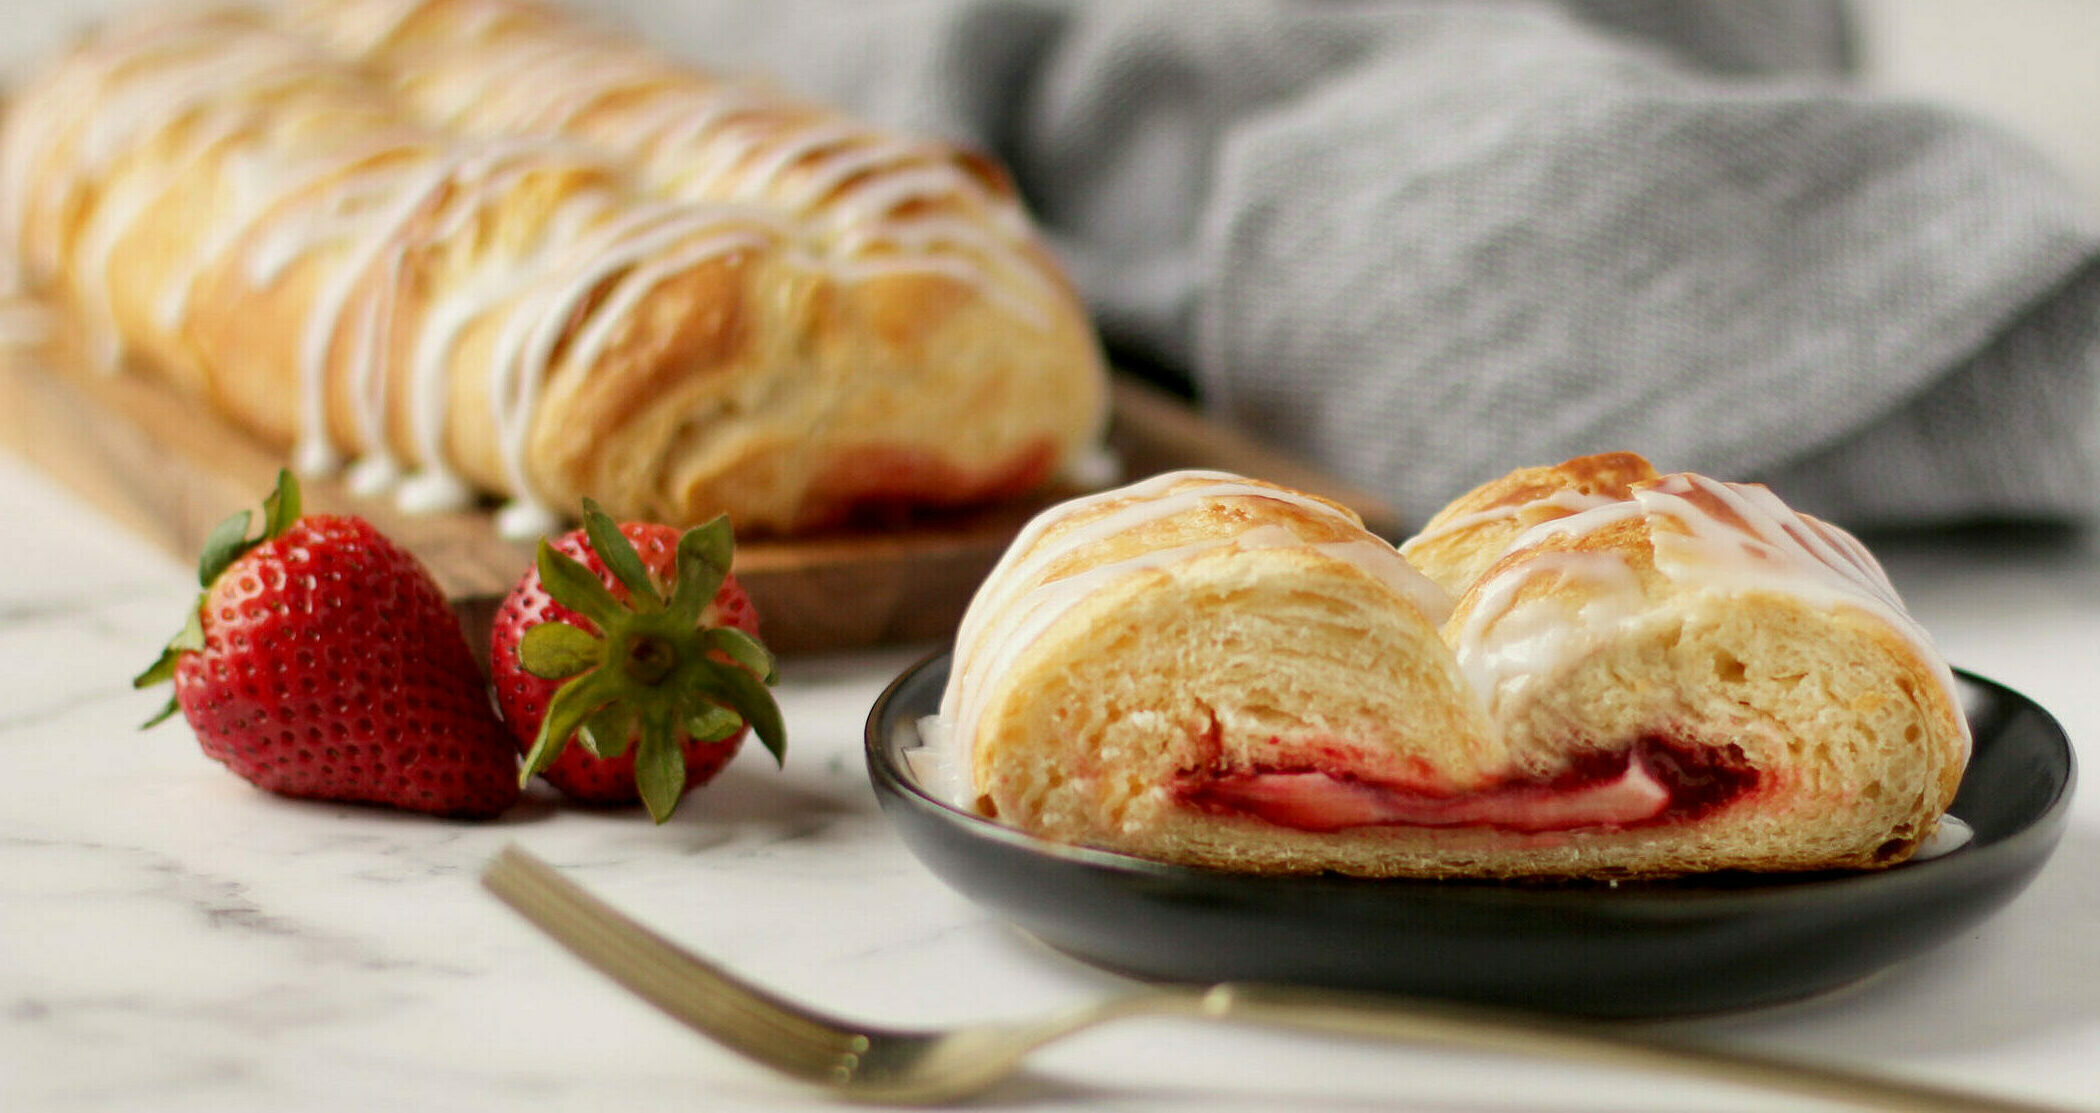 Strawberry Cream Cheese Pastry with icing in the background. A slice of pastry on a plate with fork and strawberries.